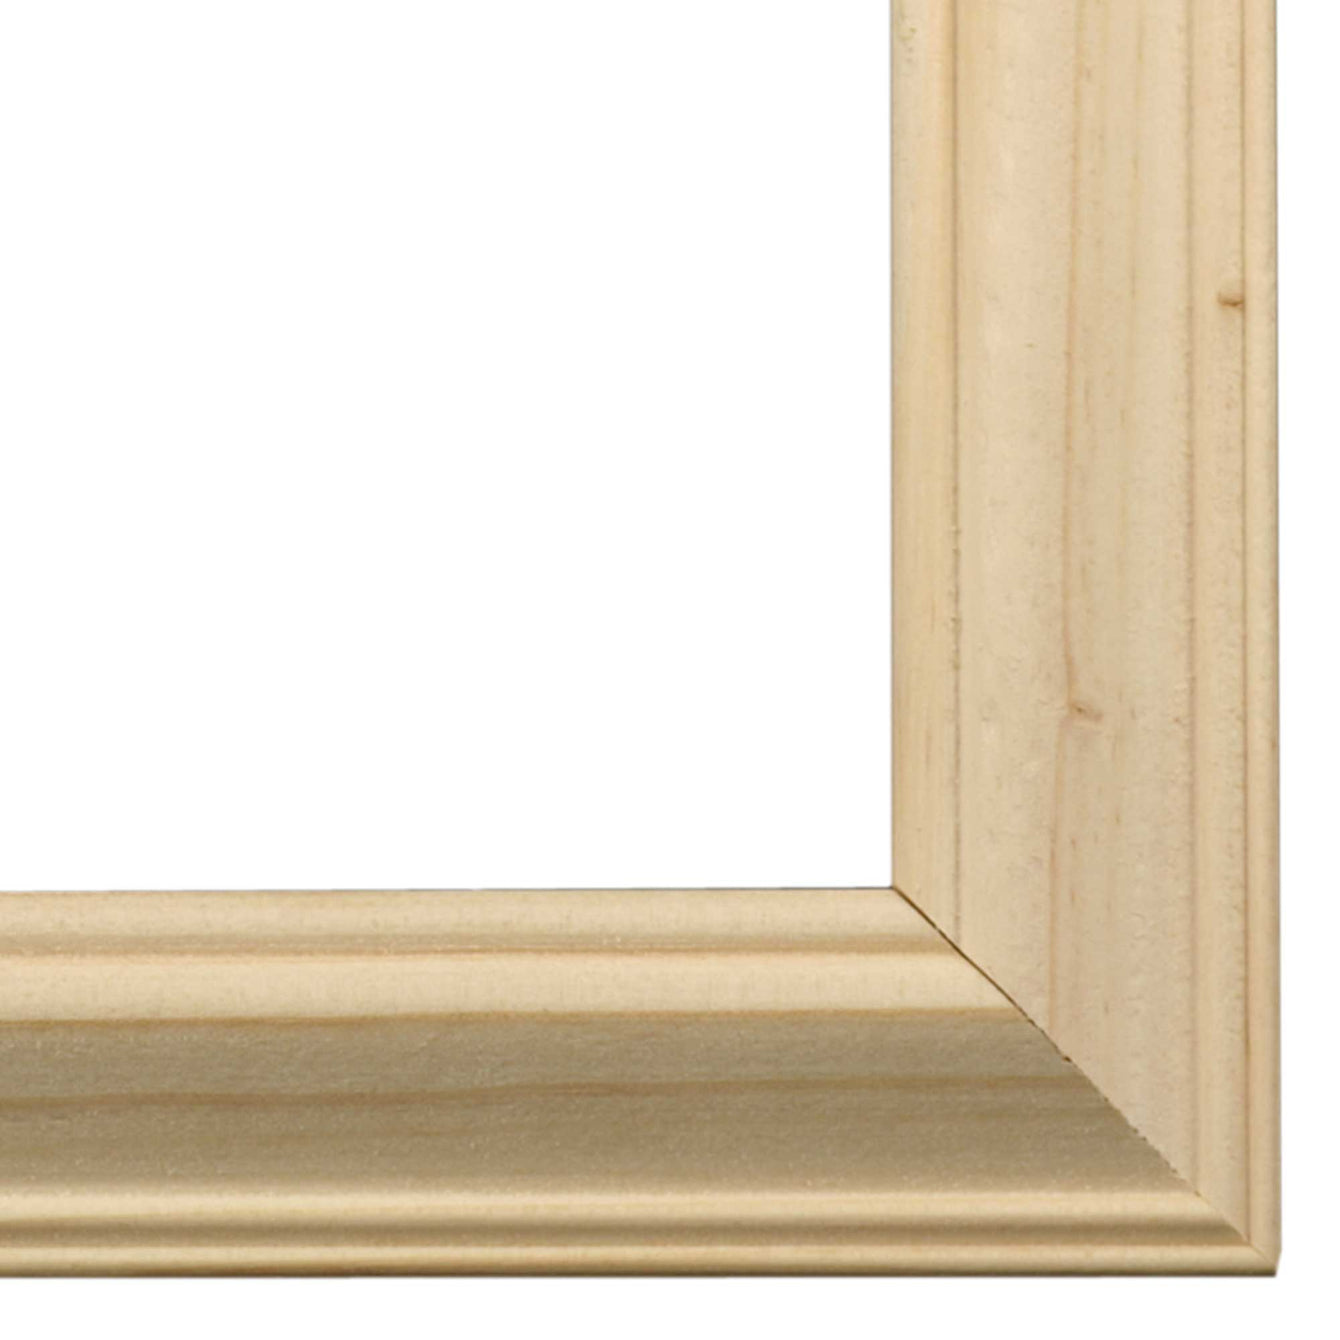 ElekTek Switch Surround Ovolo Frame Cover Finger Plate Pine Shades - Buy It Better White Pine